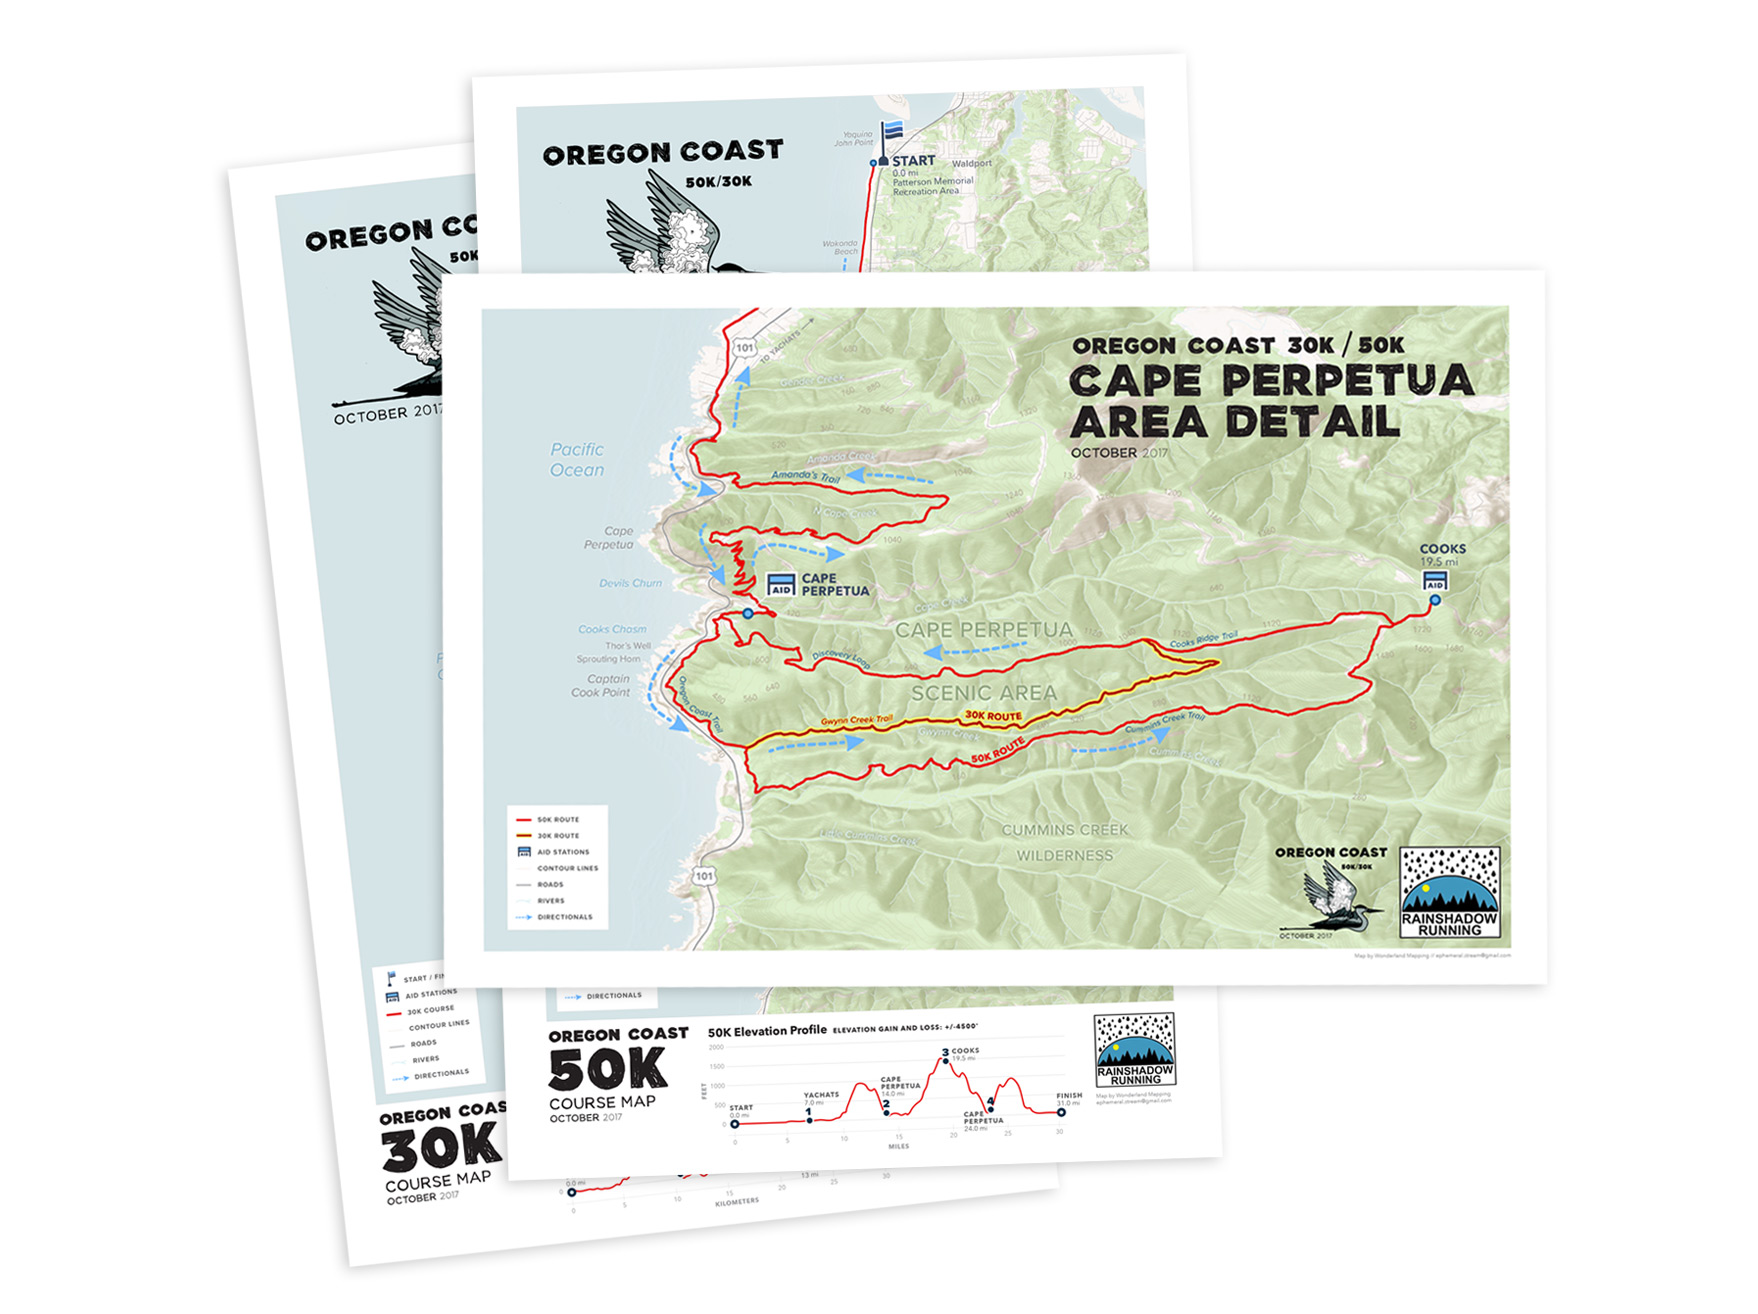 Rainshadow Running's Oregon Coast 30K/50K and Cape Perpetua detail.